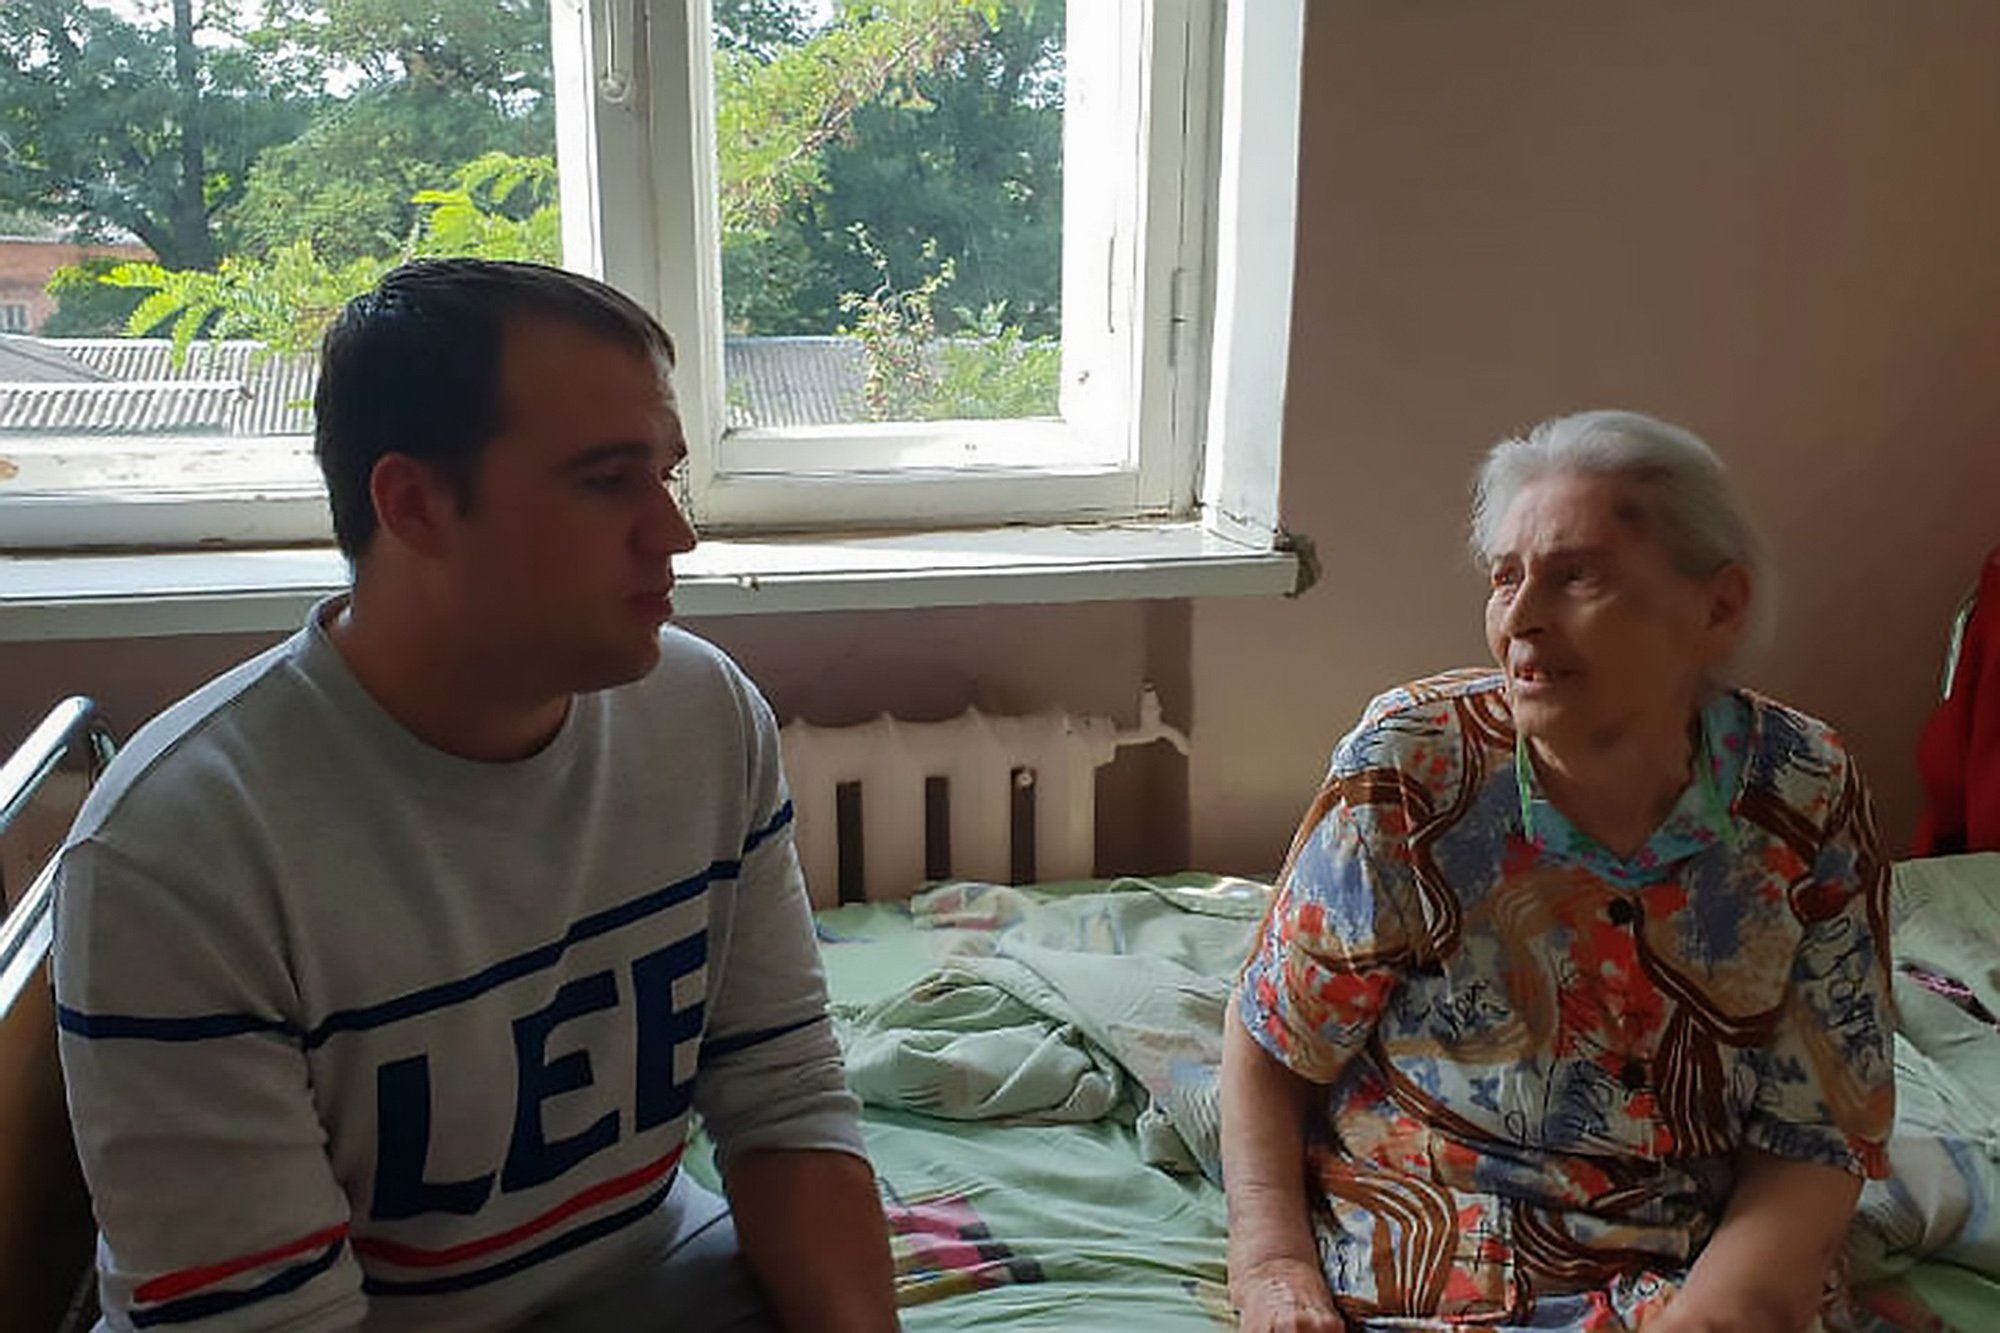 """Pic Shows: Leonid Shchepel (the man) and Klara Shalomovna; The man who saved an 88-year-old grandmother from a thug who had her pinned to the ground and broke her ribs has been fined by police for beating the attacker. Have-a-go hero Leonid Shchepel has been told be must pay 5,000 RUB (58 GBP) for beating up the thug who attacking Klara Melamed, 88. According to local media, Mrs Melamed suffered broken ribs and teeth during the attack in her hometown of Klintsy in the western Russian region of Bryansk Oblast. The incident was filmed by Shchepel on his smartphone and uploaded to social media. The unscrupulous attacker reported Shchepel to the police because of the beating he took and the hero has now been handed the fine. Shchepel said about the fine: """"I do not regret what I did. Klara's life and health are more important than the money."""" In the footage, Shchepel is hurrying along a footpath as a woman???s screams can be heard in the background. He quickly approaches a grassed area where a young man has the 88-year-old victim pinned to the ground as he pulls her hair and roughs her up. Shchepel does not hesitate and while filming himself in the act, he kicks the attacker in the head, sending him reeling and freeing the elderly victim. Still holding his phone in his hand to record the scenes, the have-a-go hero shouts at the young man and continues to kick him in the head. He says: """"Come on, fight with me, b*tch! Fight with me!"""" The humbled attacker remains on all-fours and does not attempt to fight back. He continues to take several hard blows to the face before Shchepel turns to the dishevelled old lady, who is covered in mud and looks scared out of her wits. The brave resident helps the granny to her feet and accompanies the woman across the road to her home. He turns back to the attacker, who is seen covering his head on all-fours on the ground. According to reports, Shchepel called an ambulance for the distressed old lady. She suffered two broken"""